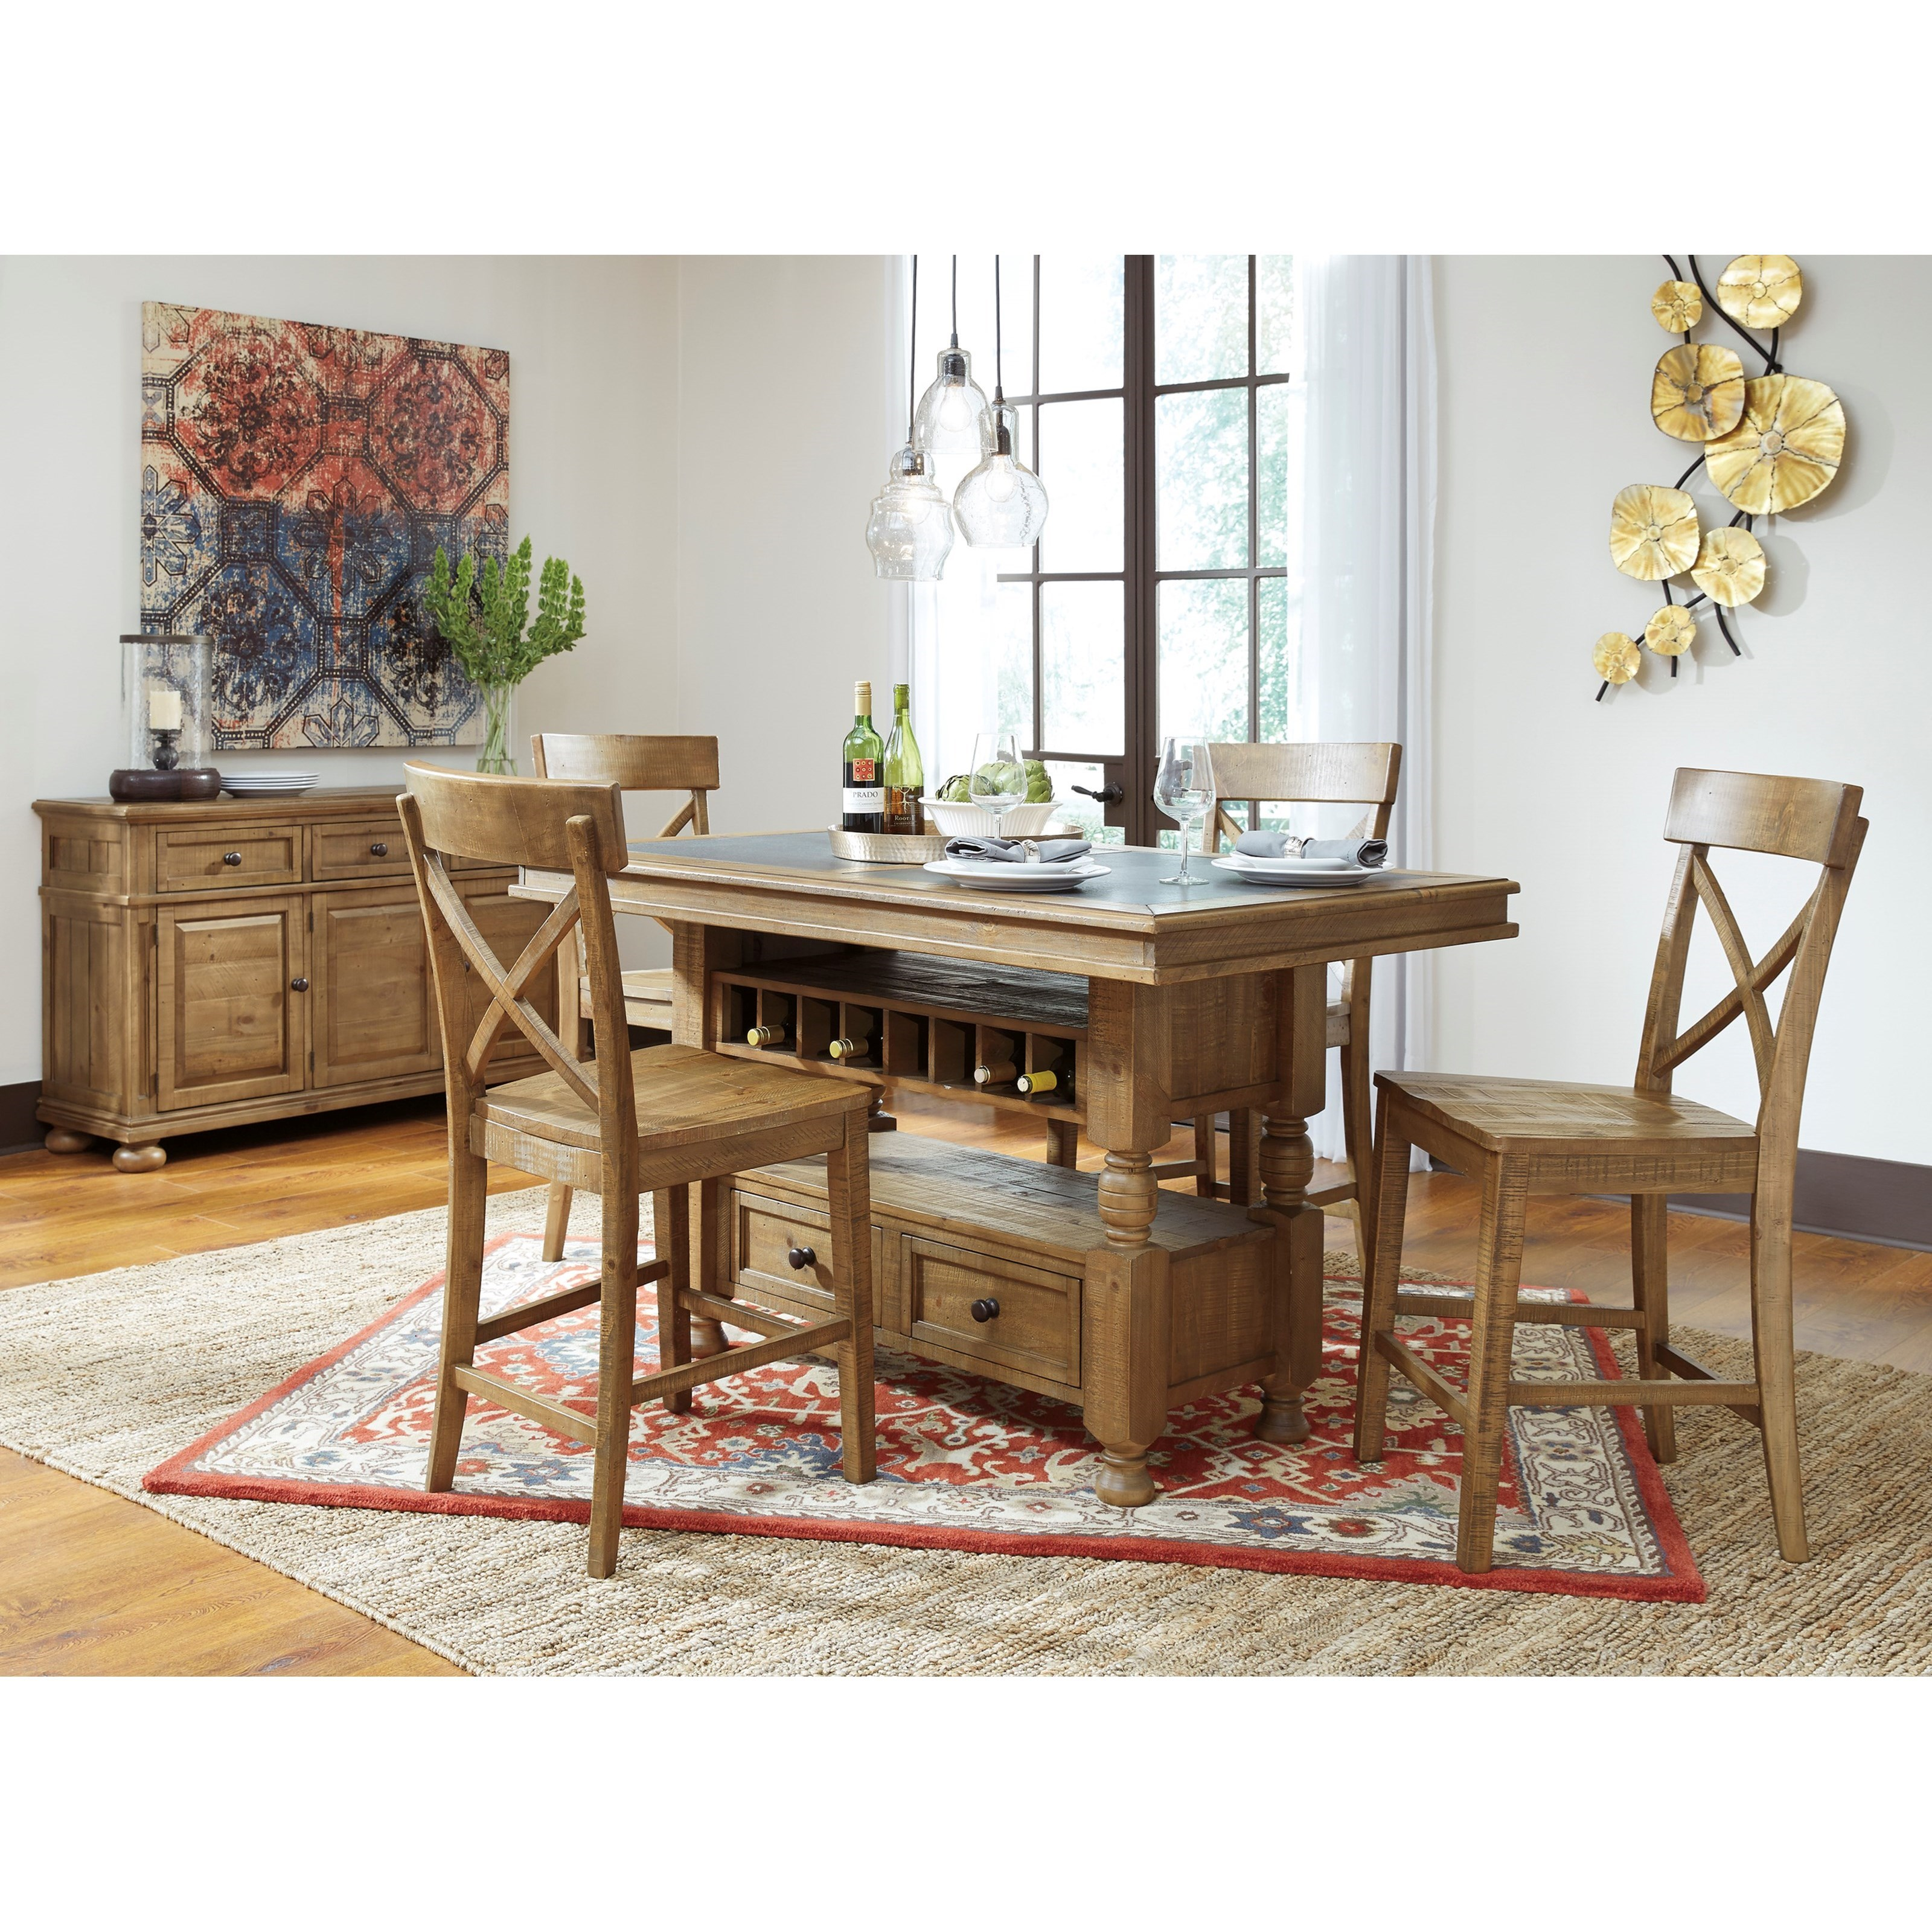 Signature Design by Ashley Trishley Casual Dining Room Group - Item Number: D659 Dining Room Group 4